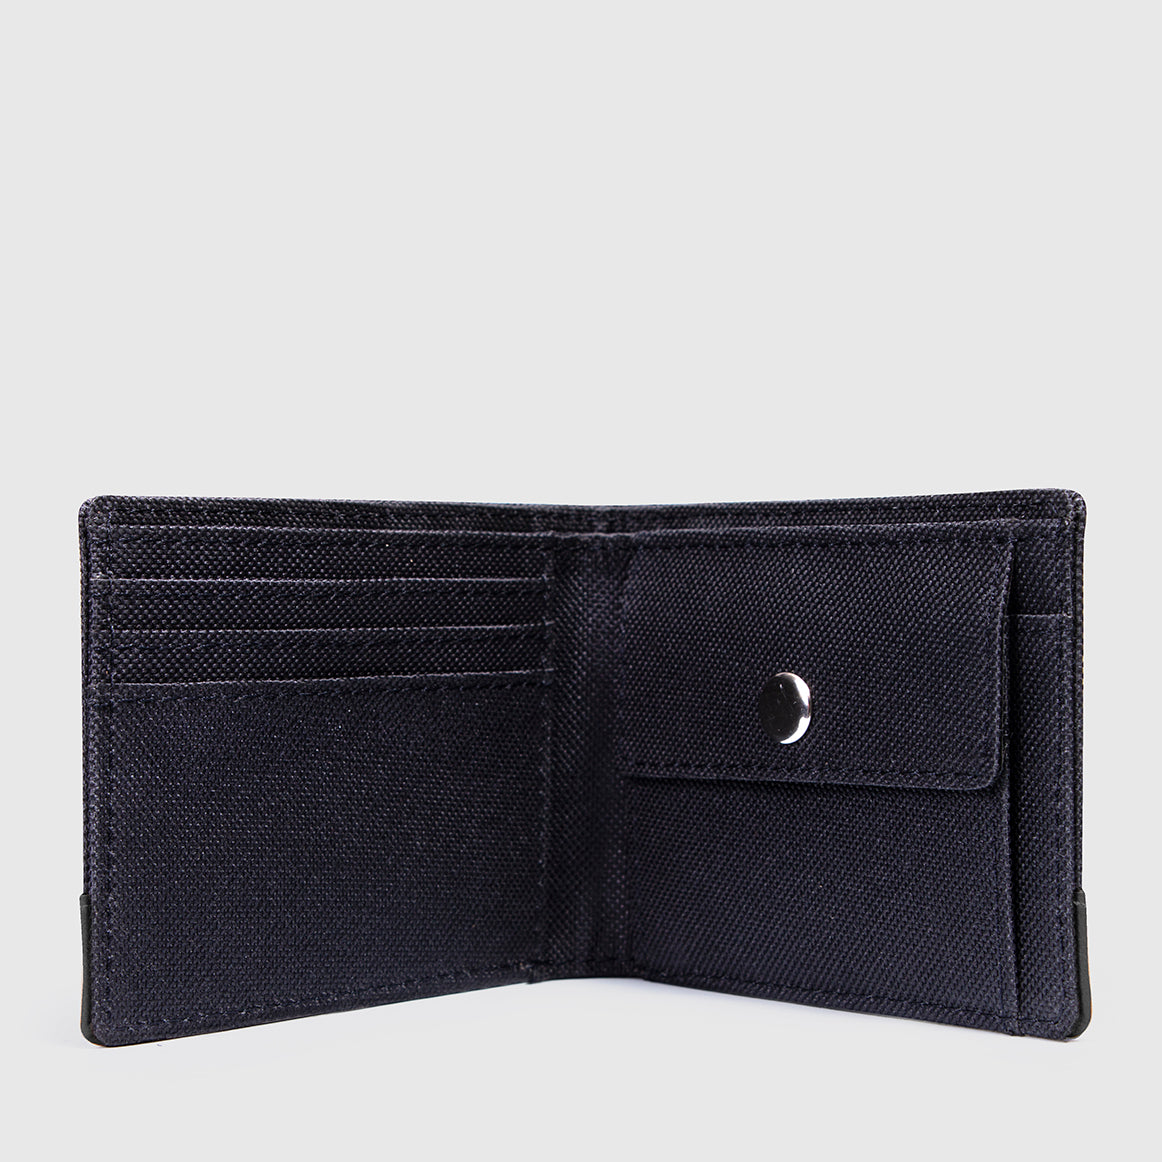 Wallet York Black